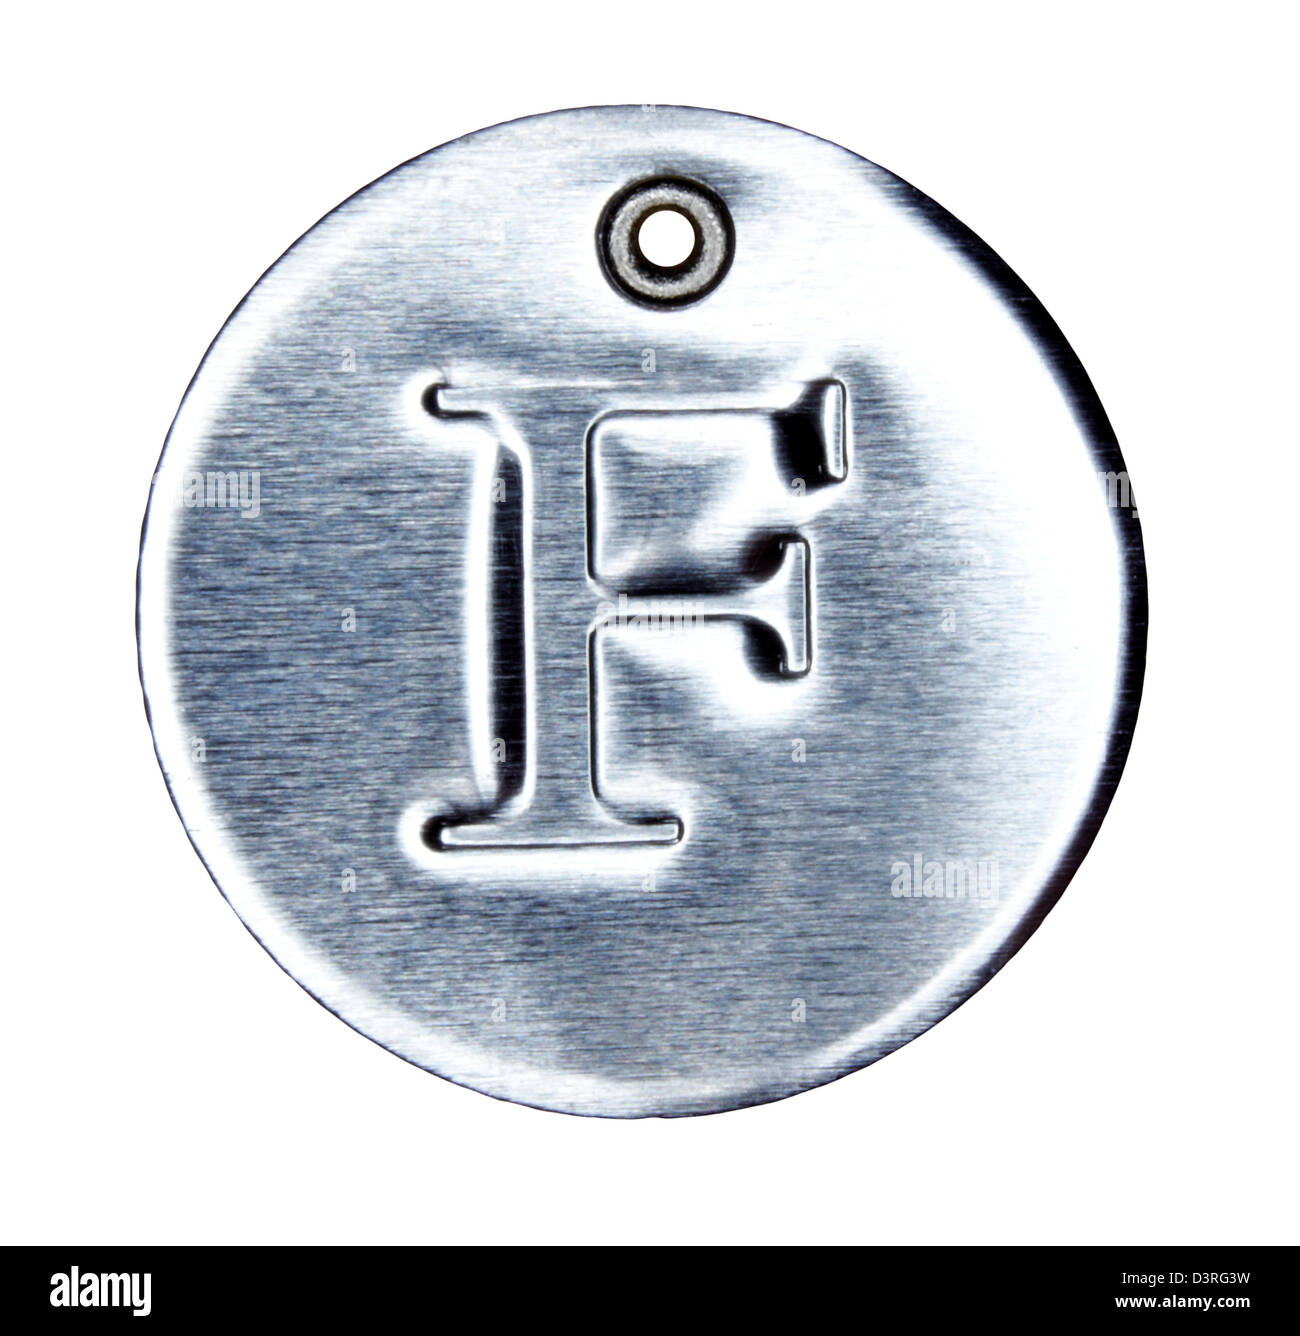 Brushed metal letter of the alphabet F - Stock Image